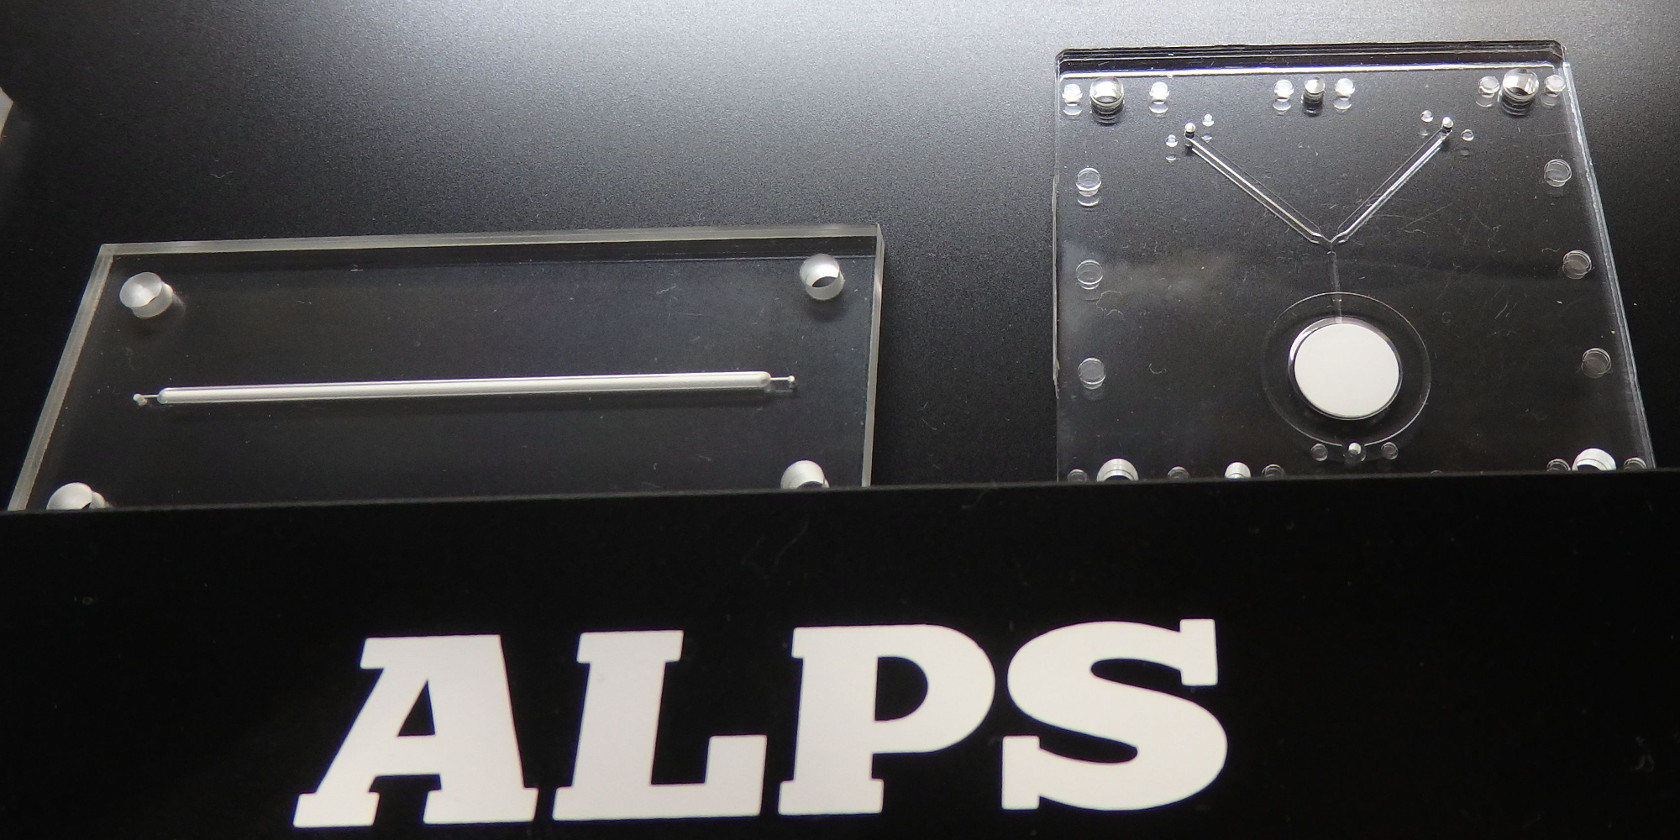 Alps Electric Aims to Commercialize Resin Microchannel Device in 2018